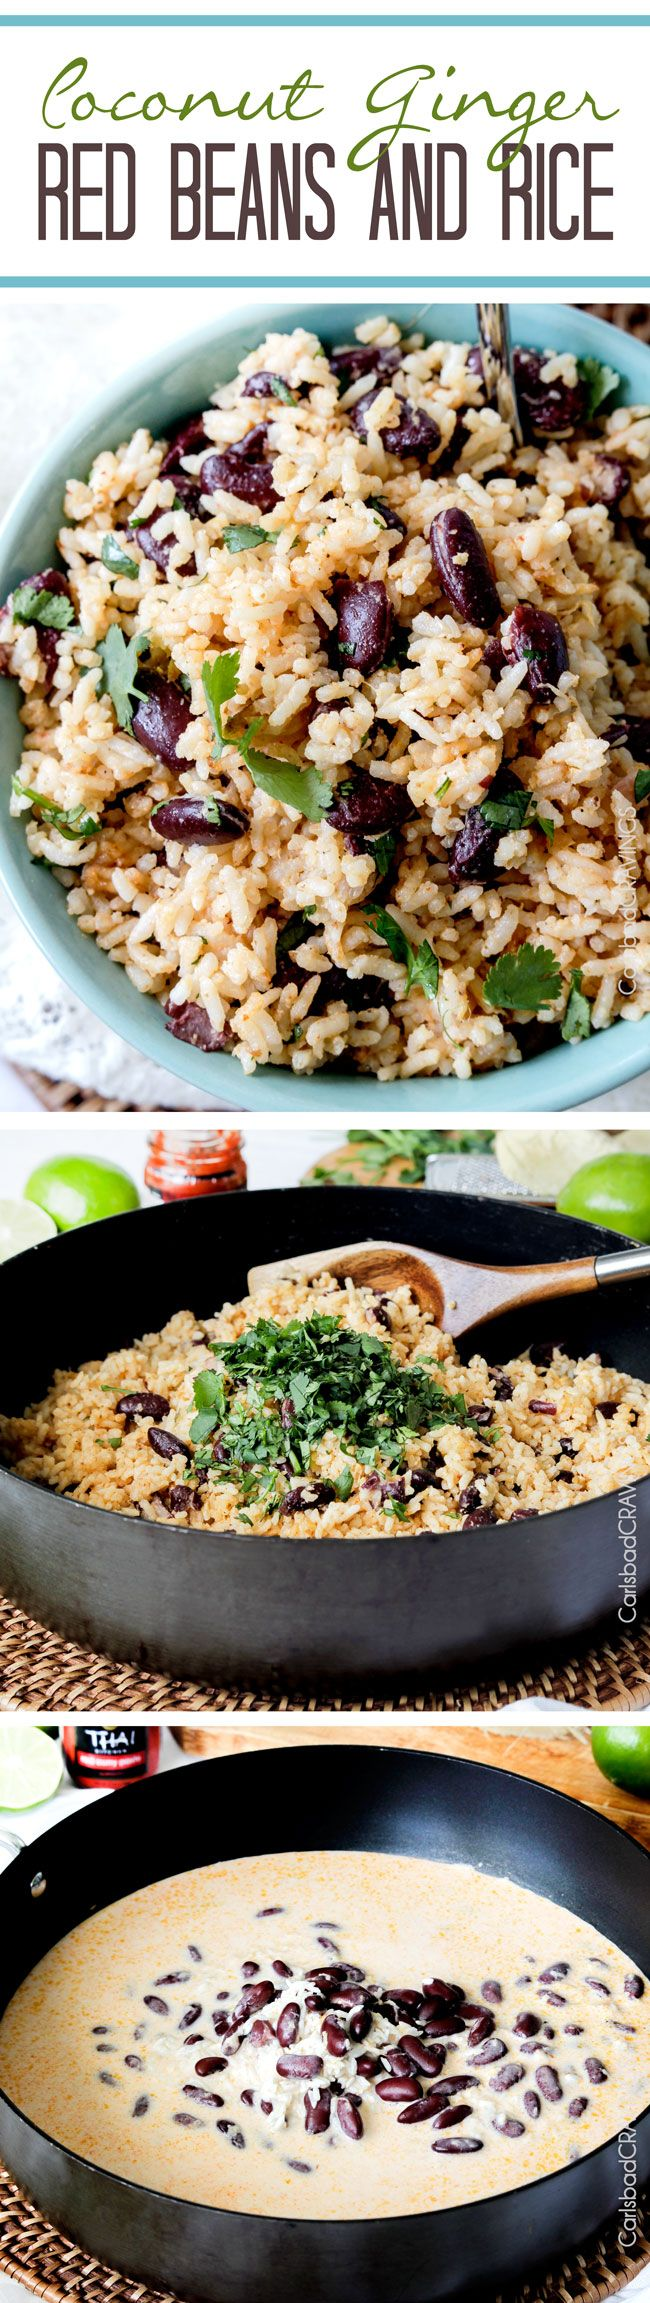 Transform regular rice into tantalizing Coconut Ginger Red Beans and Rice swirled with cilantro and lime.